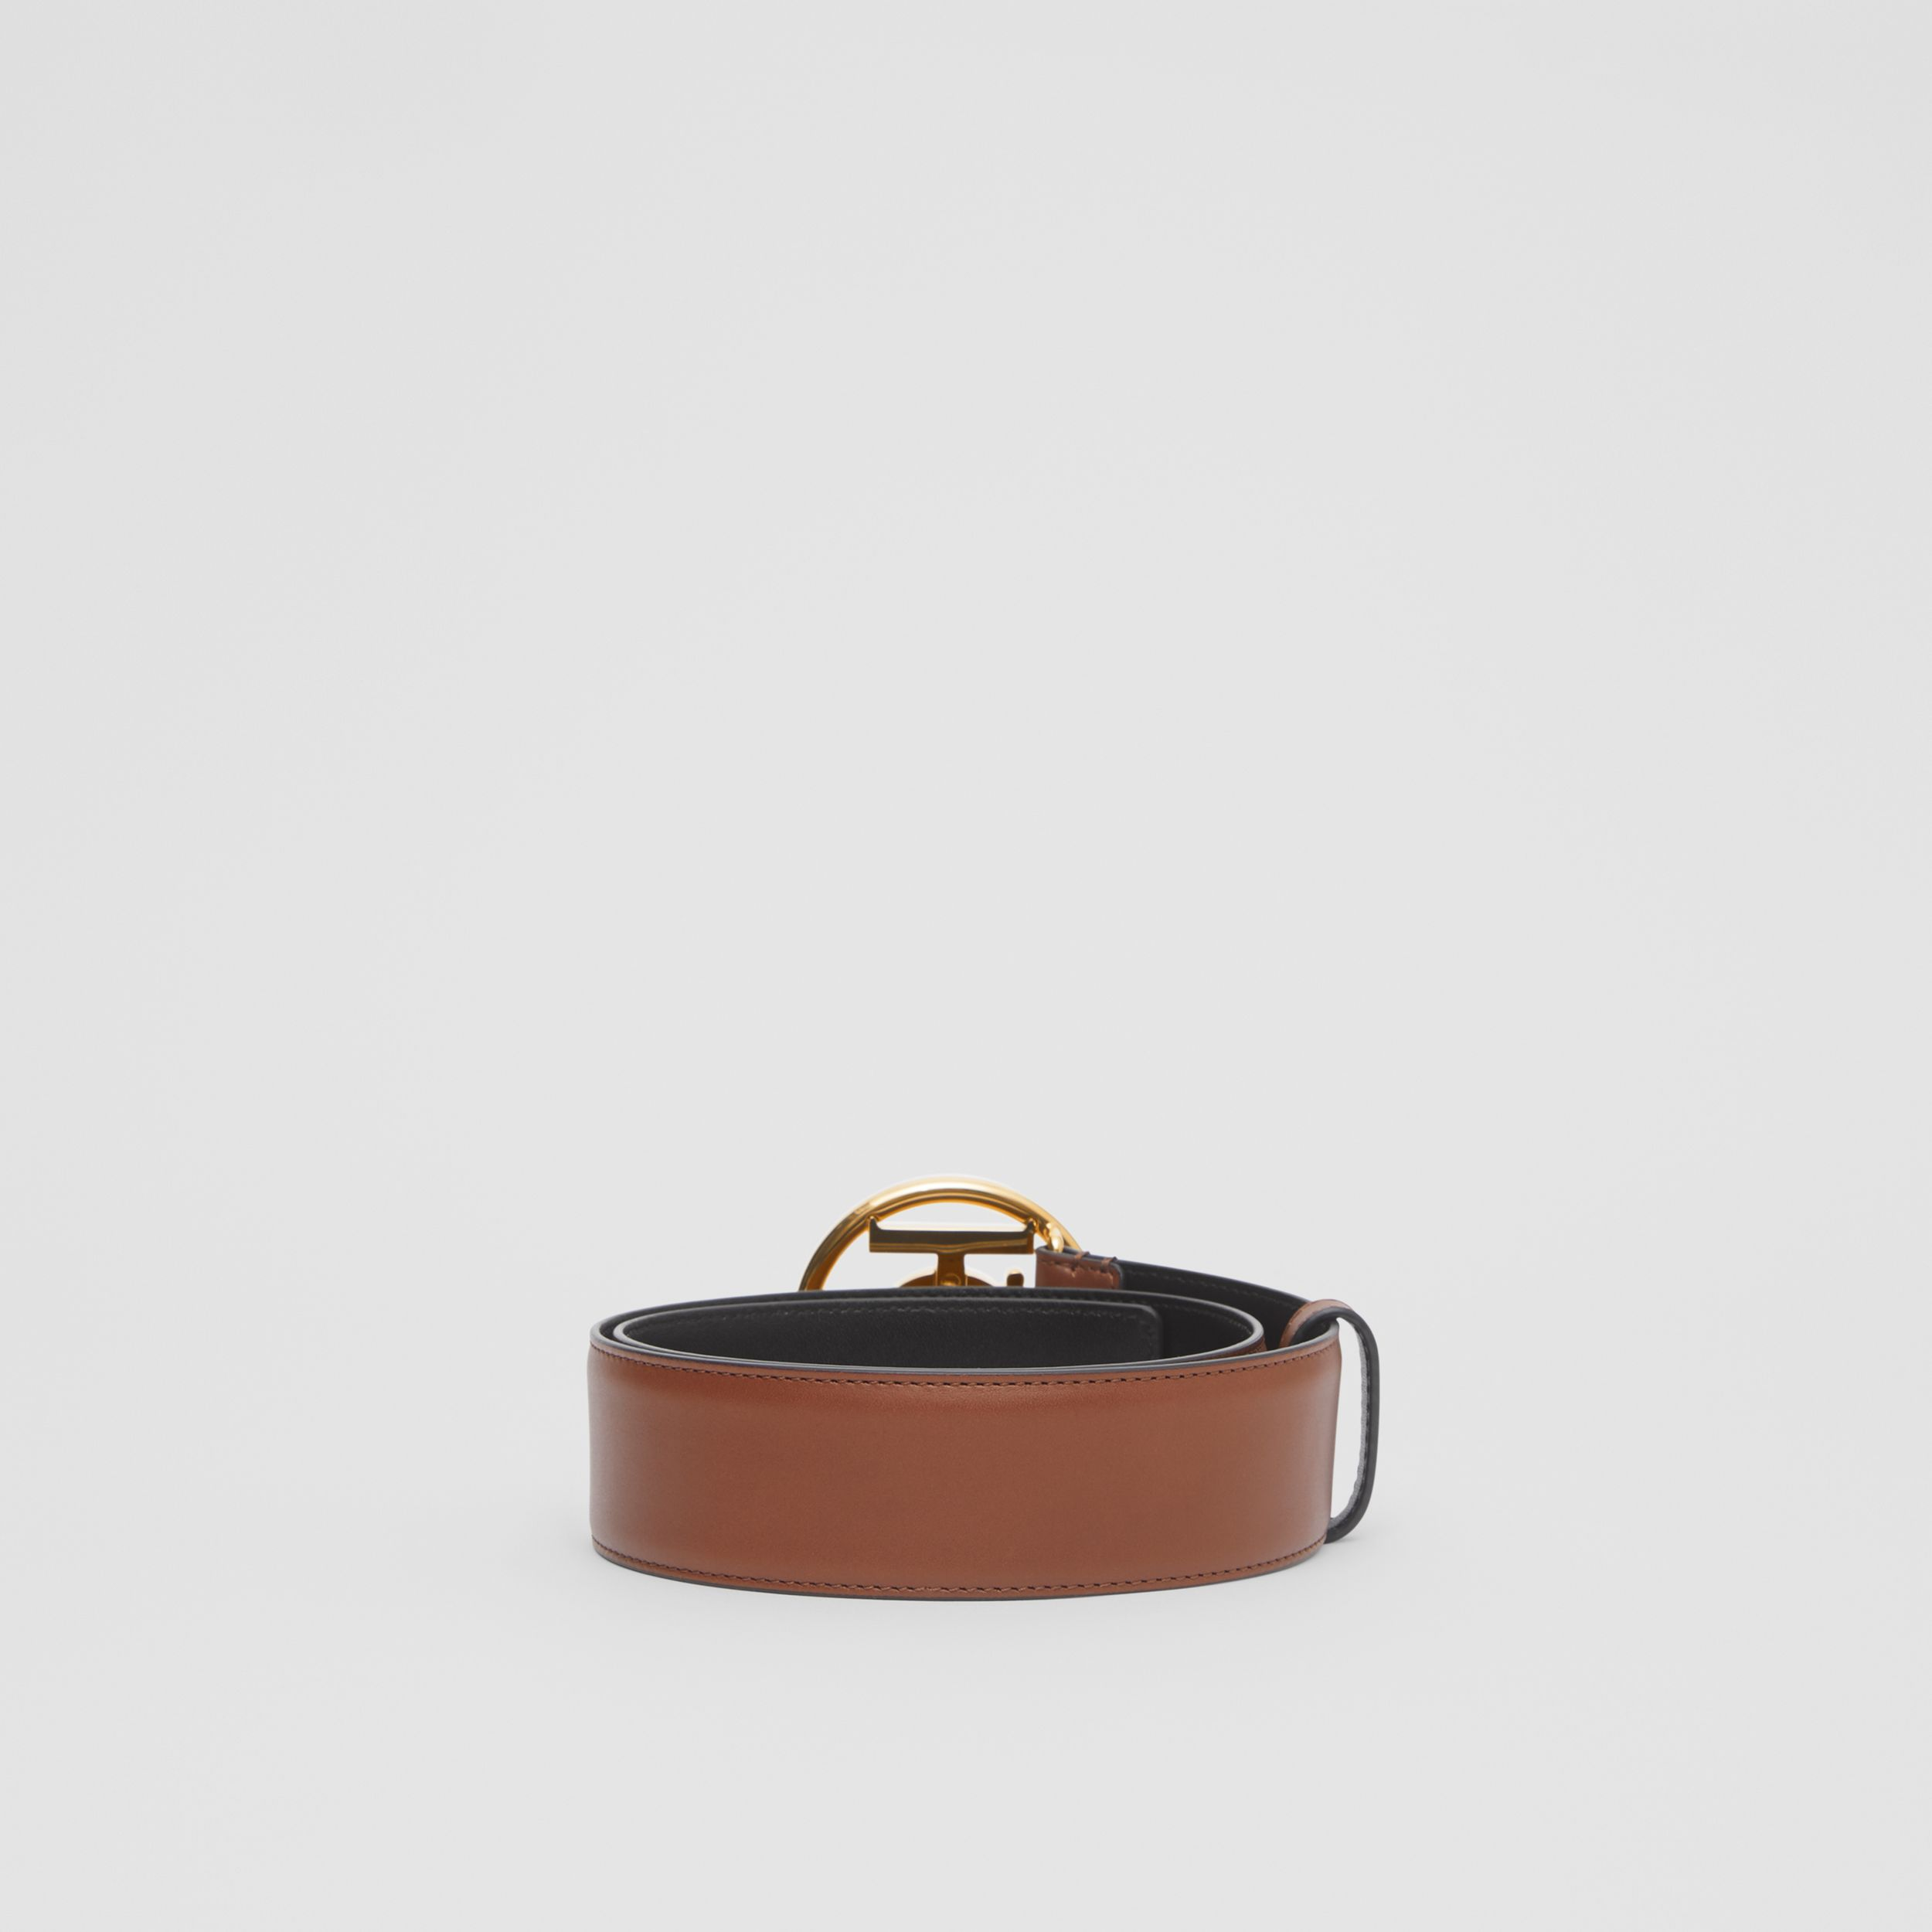 Monogram Motif Leather Belt in Tan/antique Dark Brass - Women | Burberry Hong Kong S.A.R. - 4